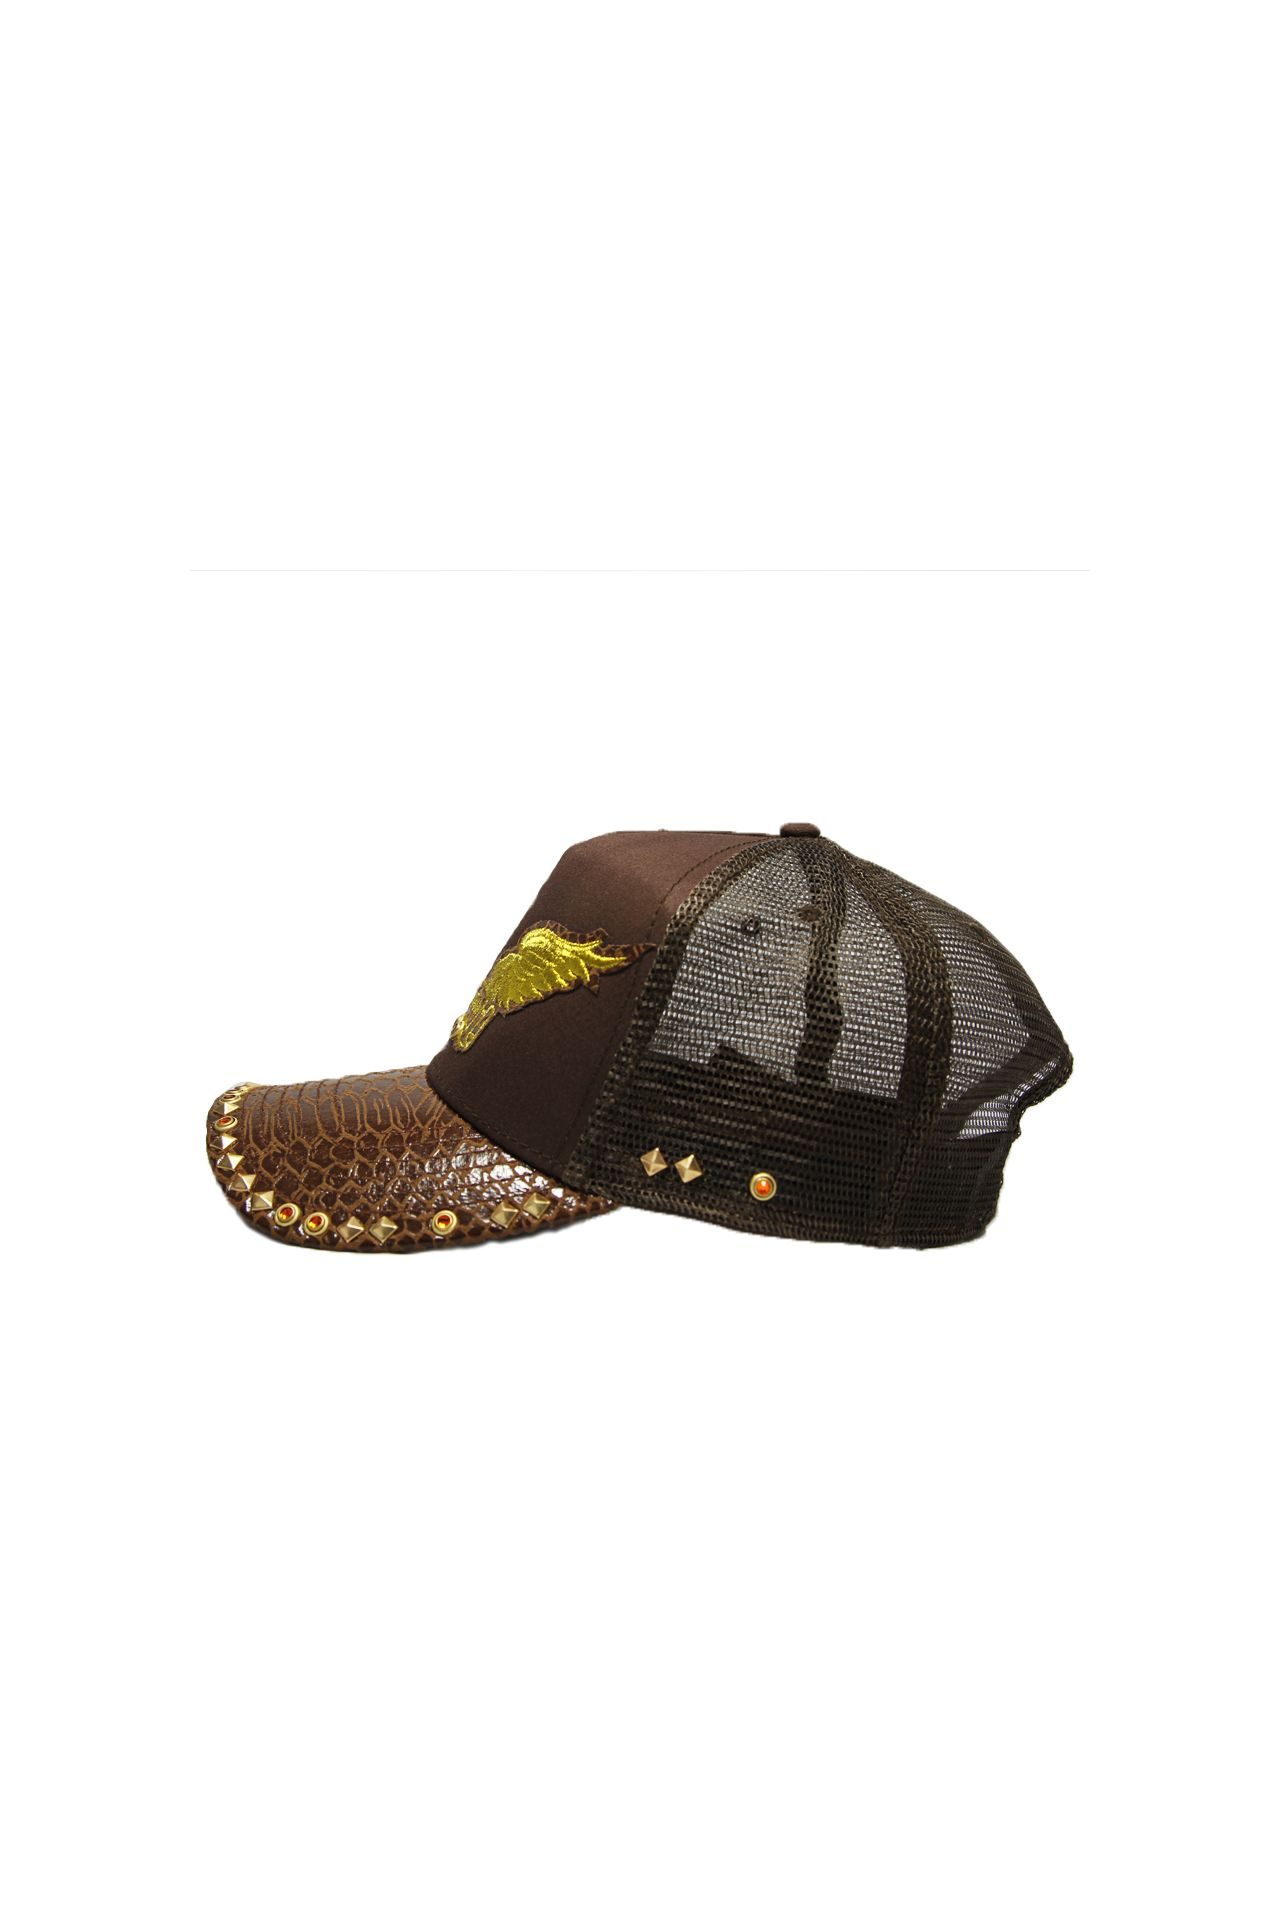 BROWN TWILL CAP WITH STUDS AND CRYSTALS